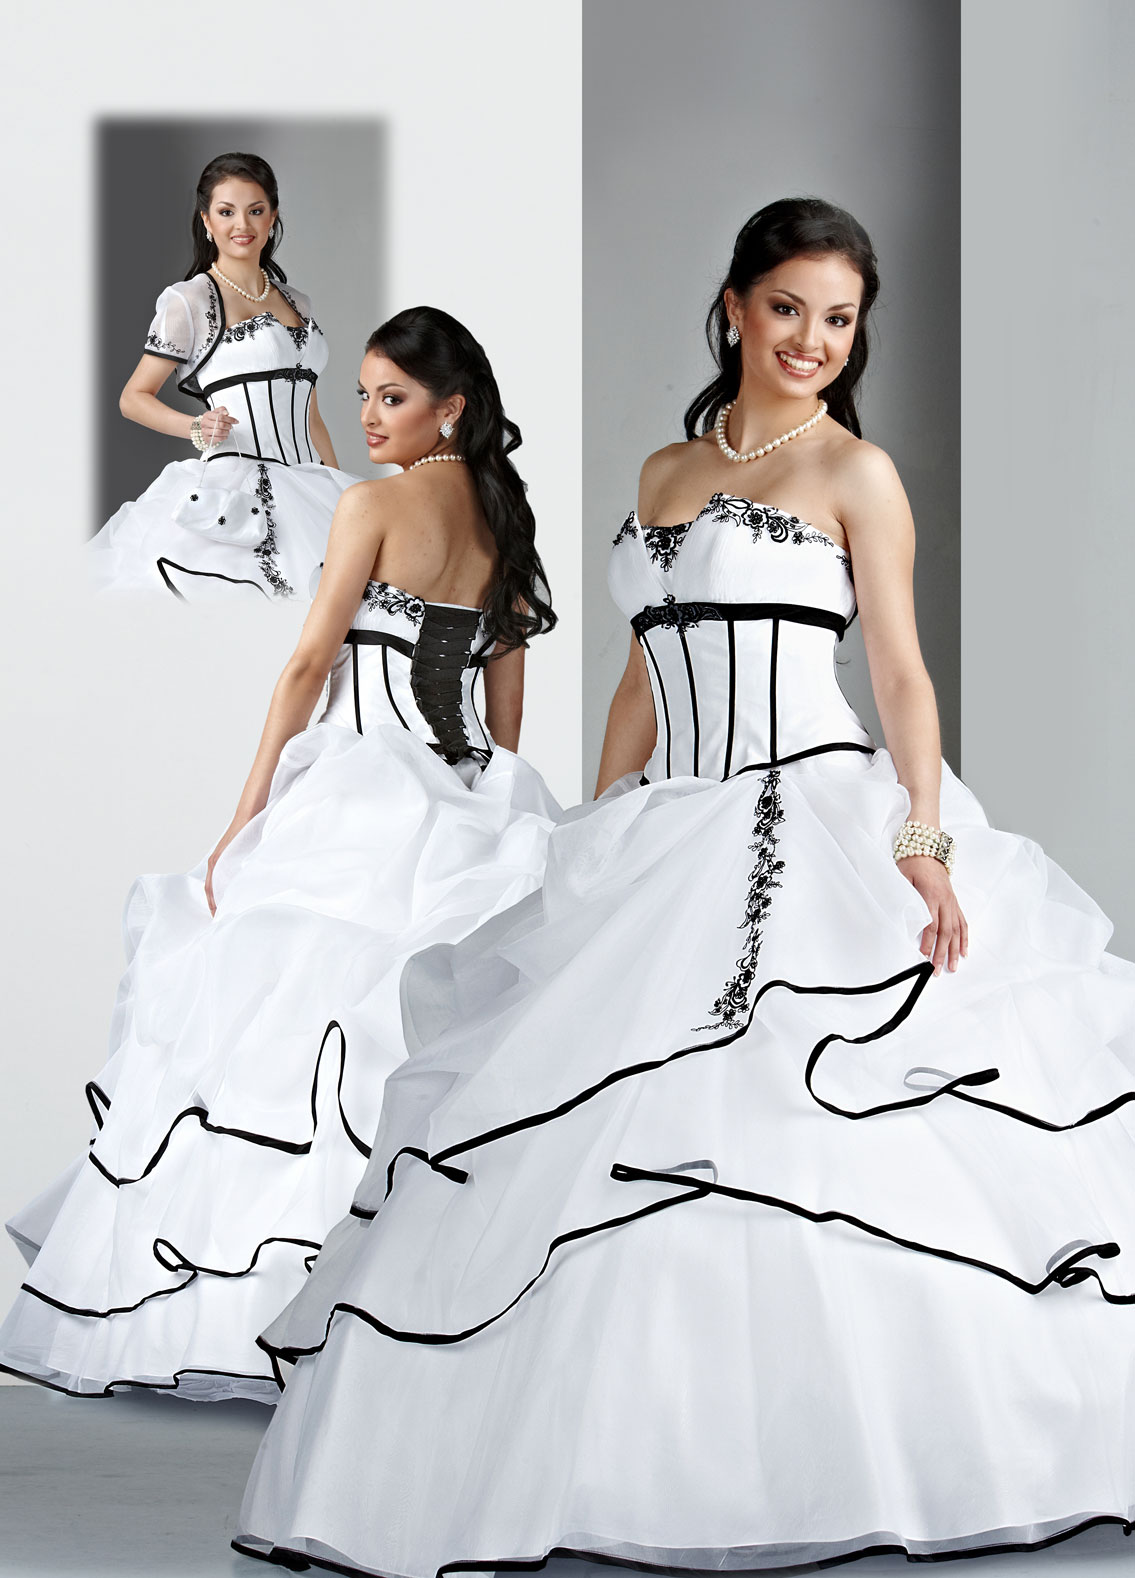 White Ball Gown Strapless Lace Up Full Length Quinceanera Dresses With Black Embroidery And Ruffles